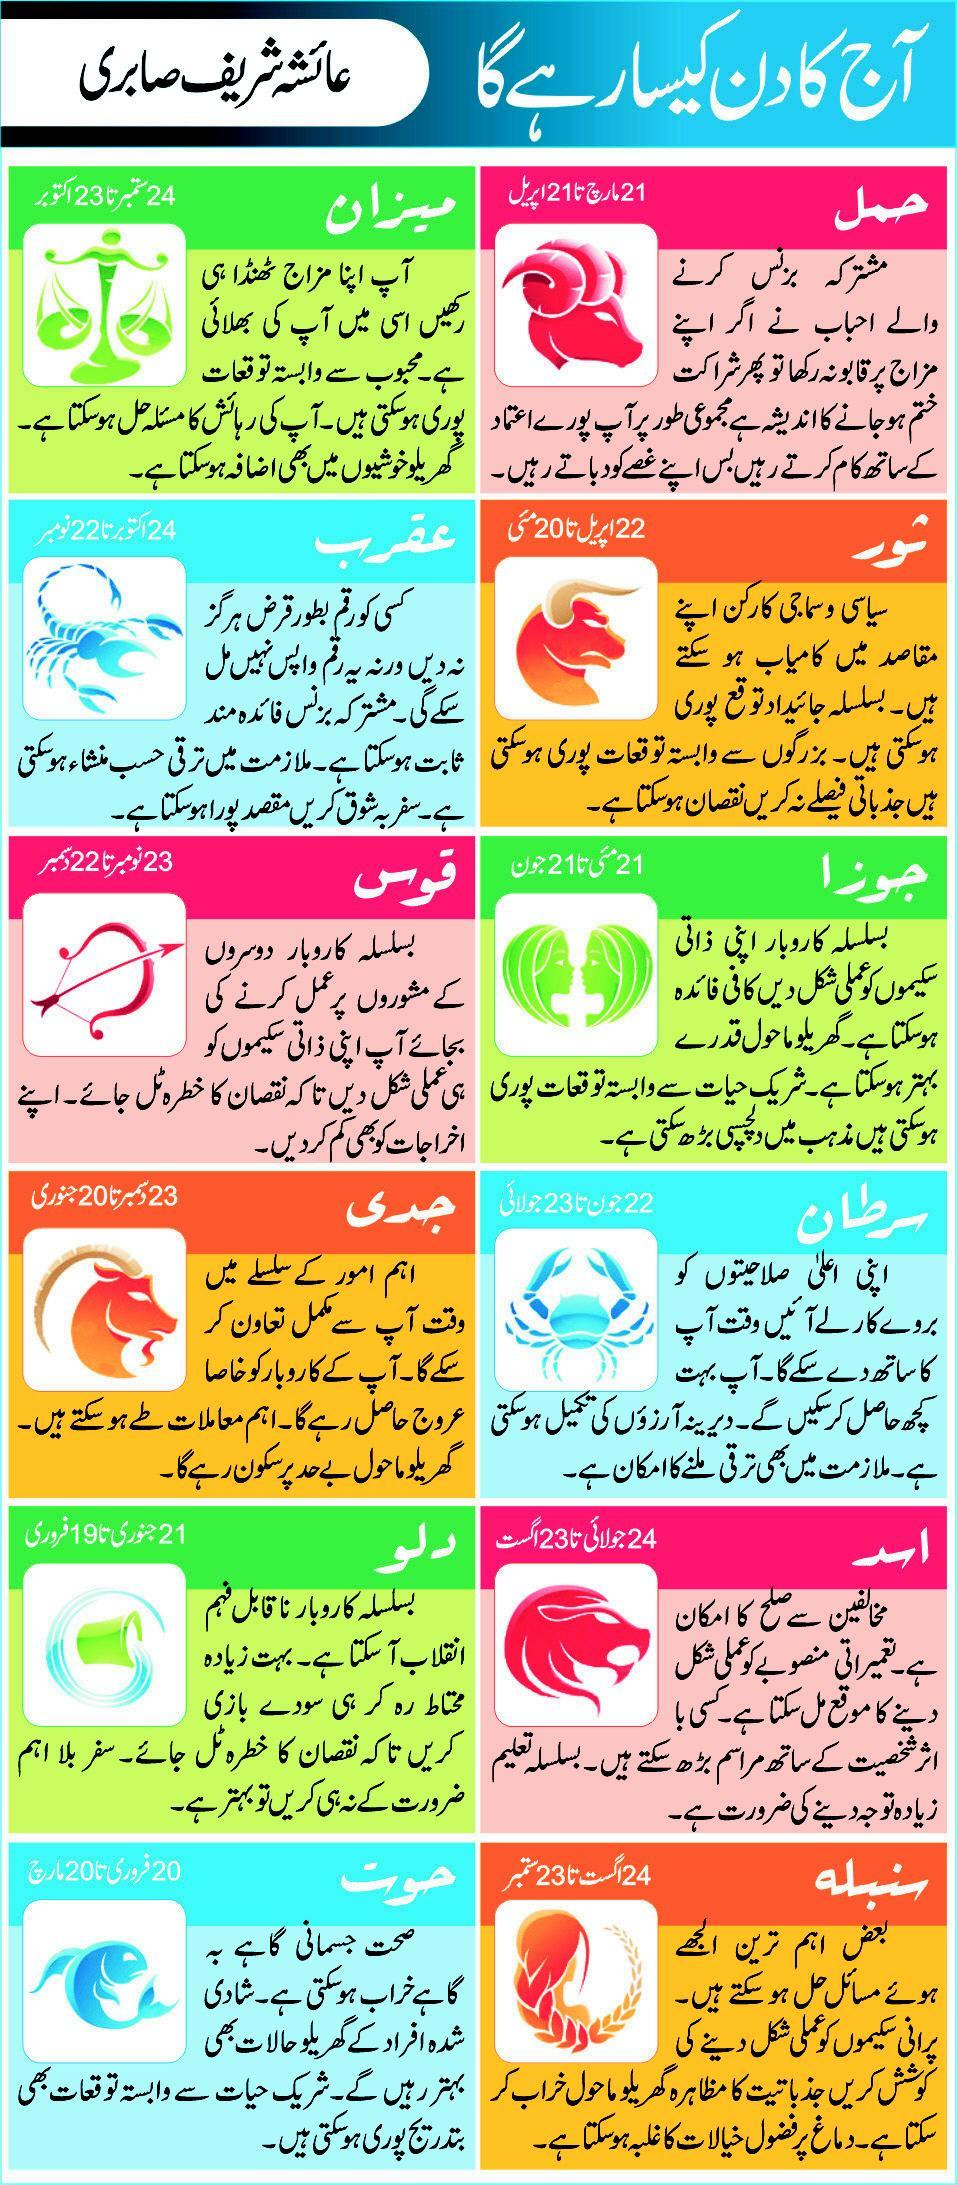 Daily Horoscope in Urdu 14 November 2015 Today